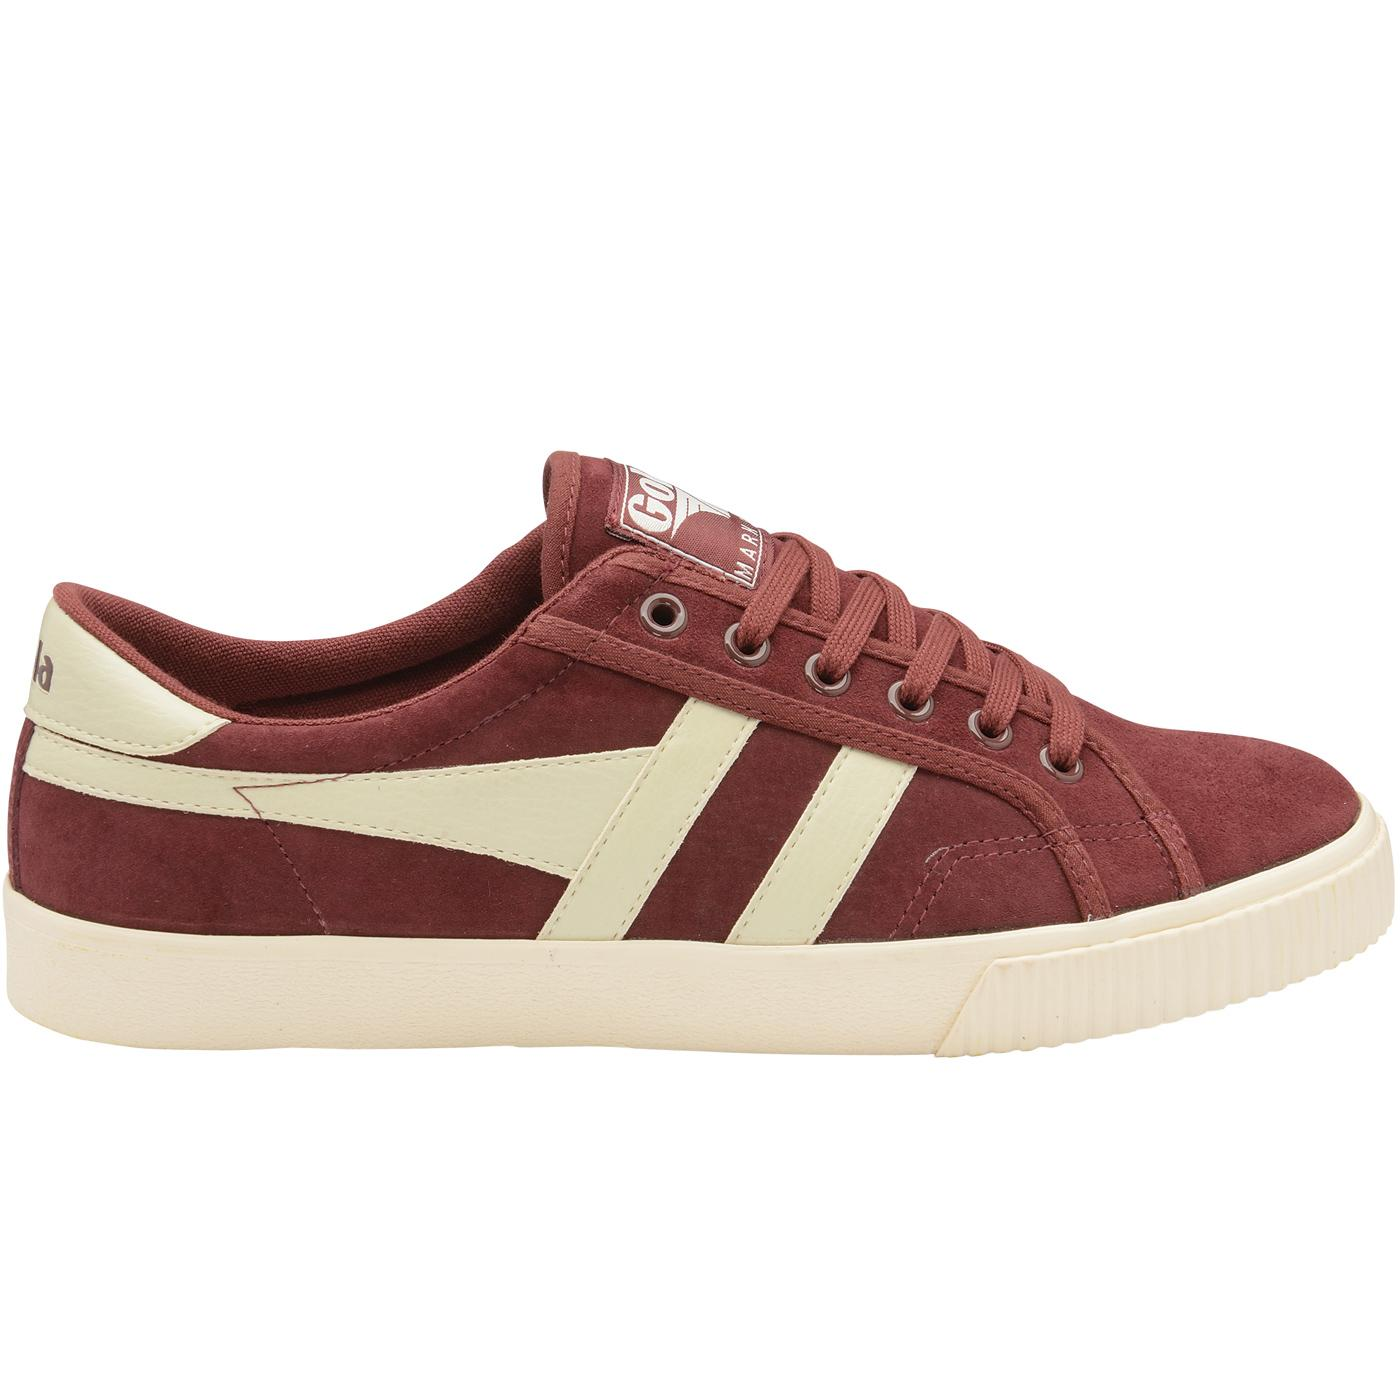 Mark Cox Suede GOLA Retro Tennis Trainers (B/OW)